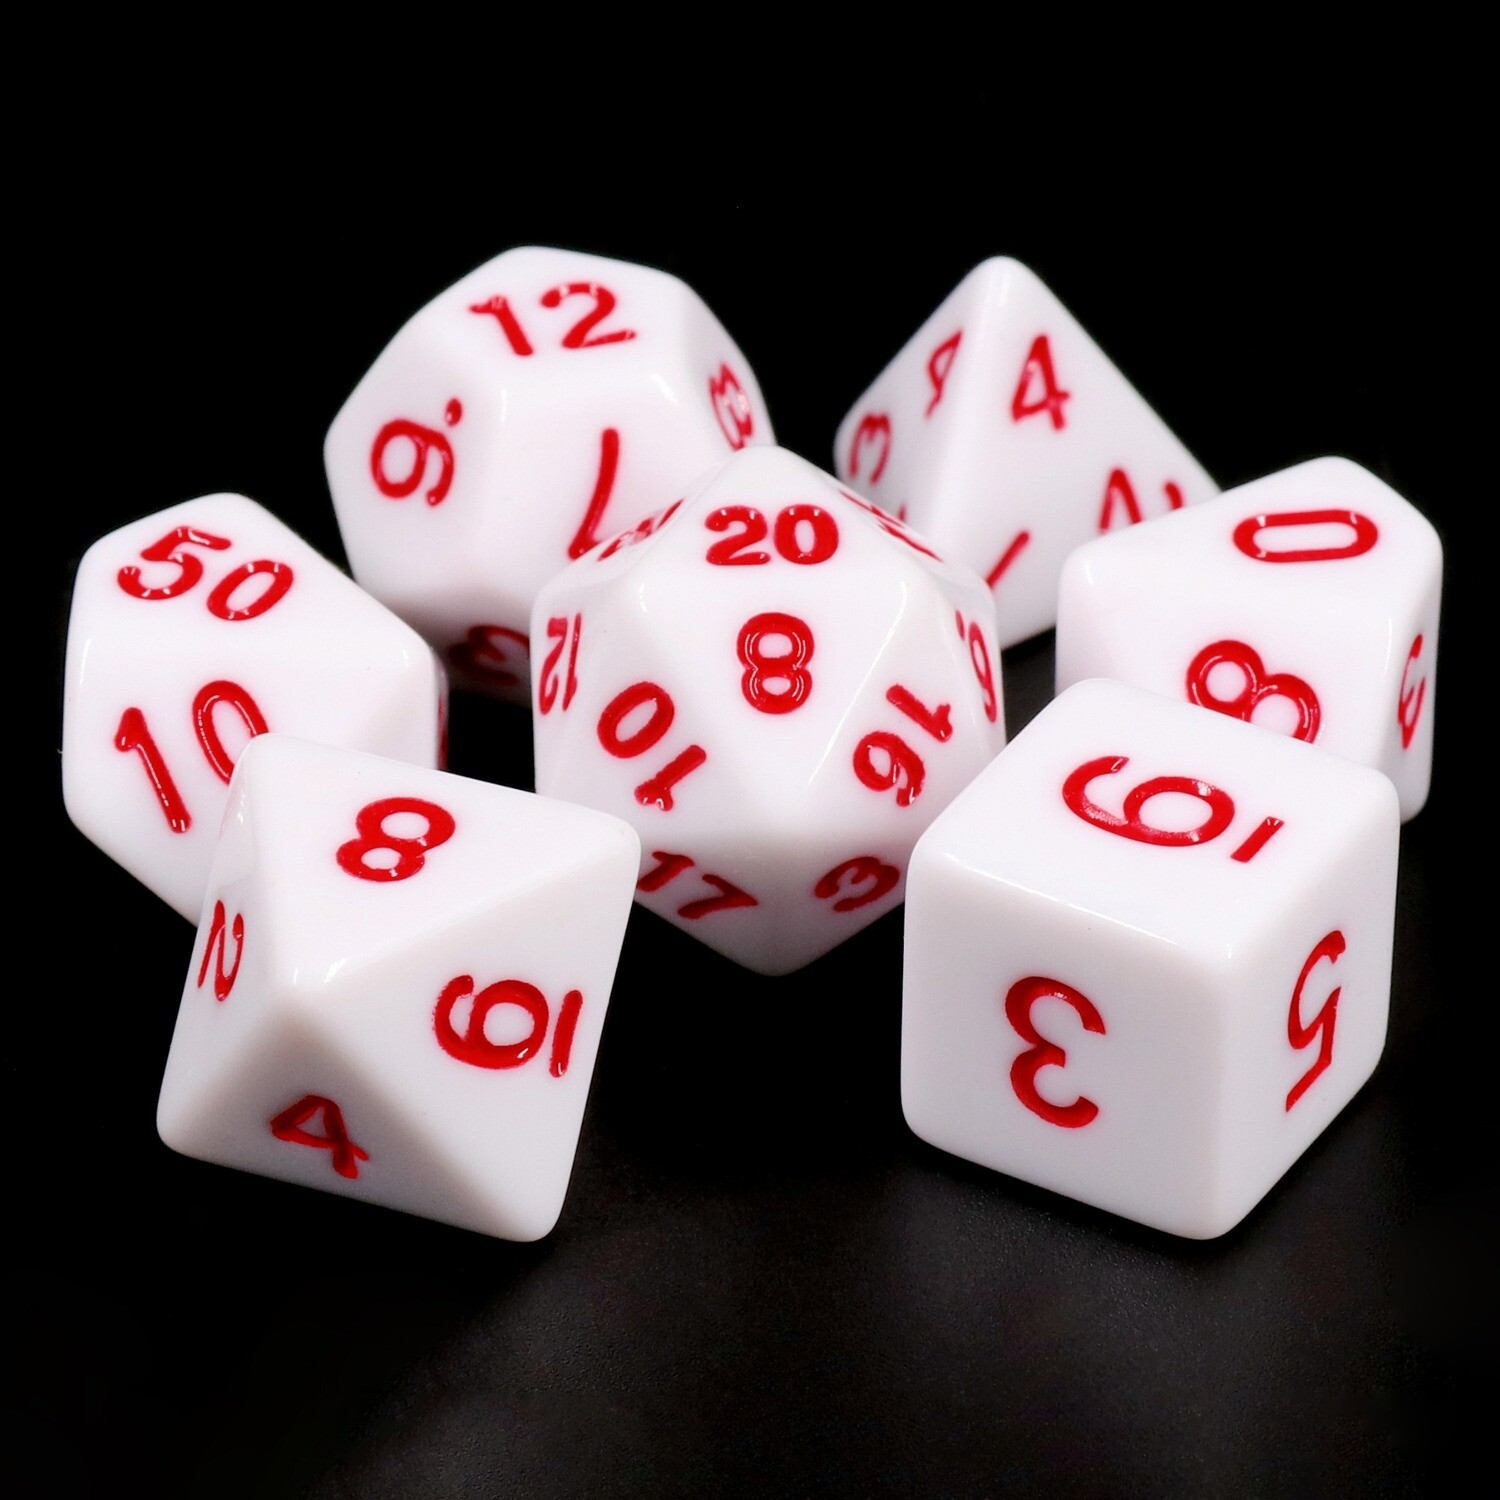 7 Die Set: Opaque White with Red